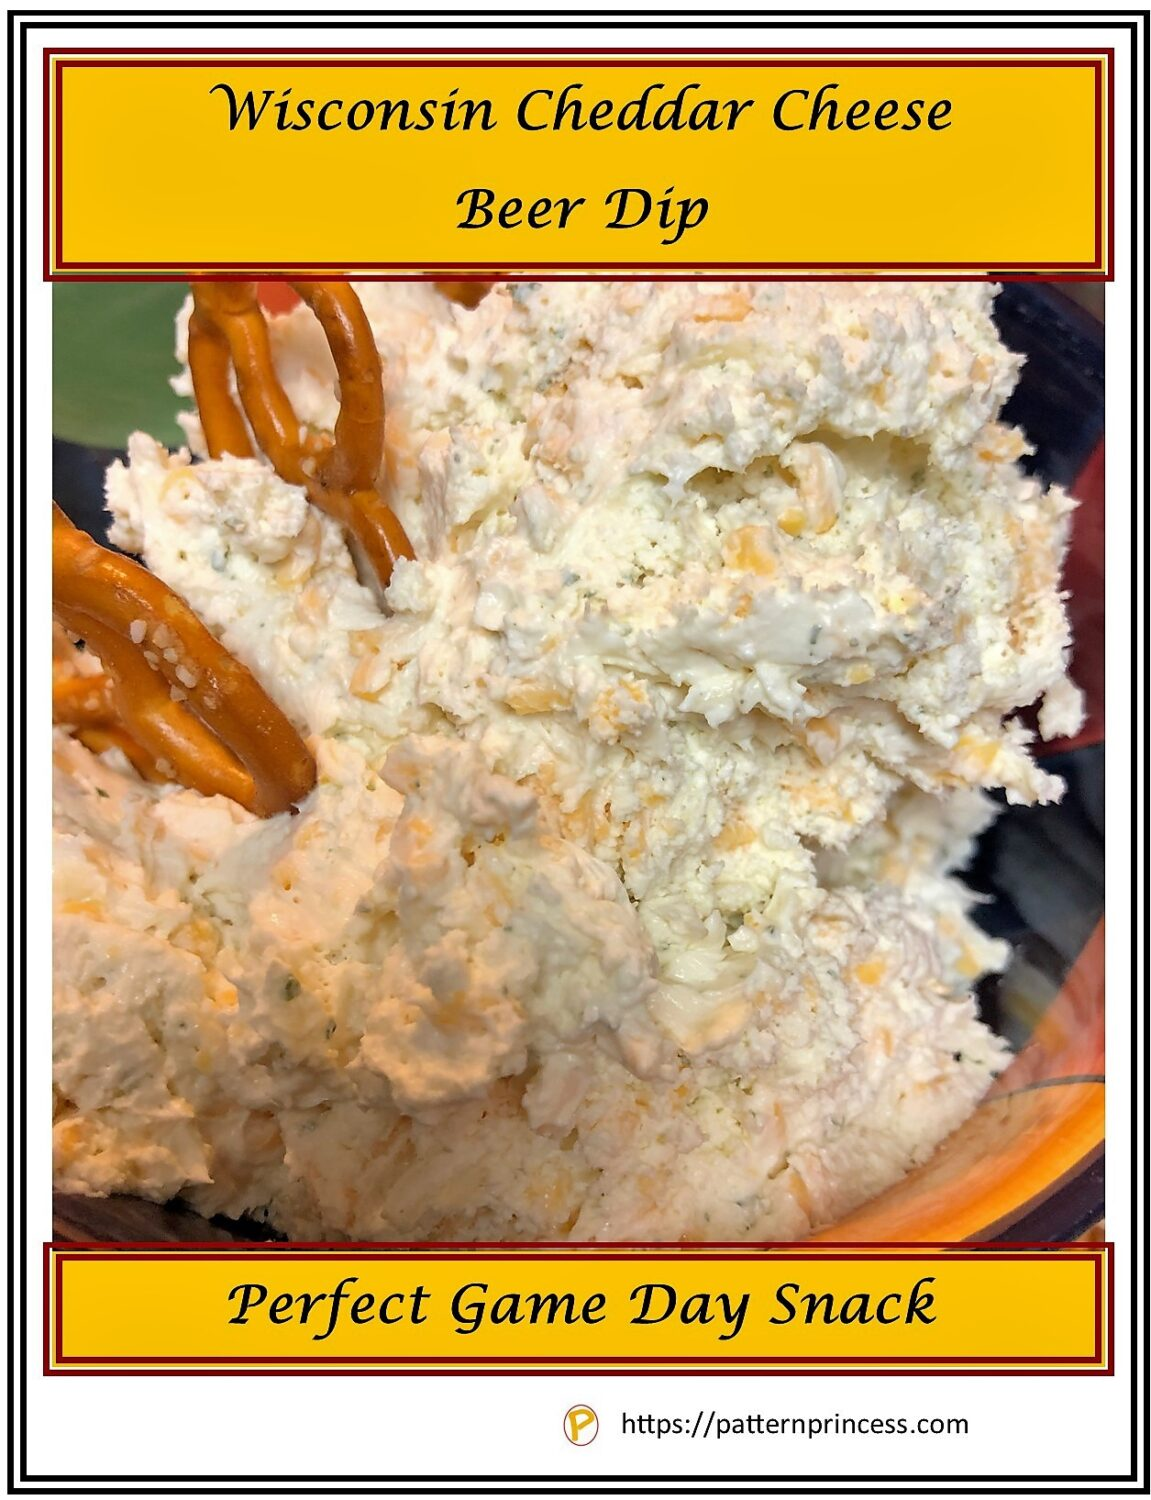 Wisconsin Cheddar Cheese Beer Dip